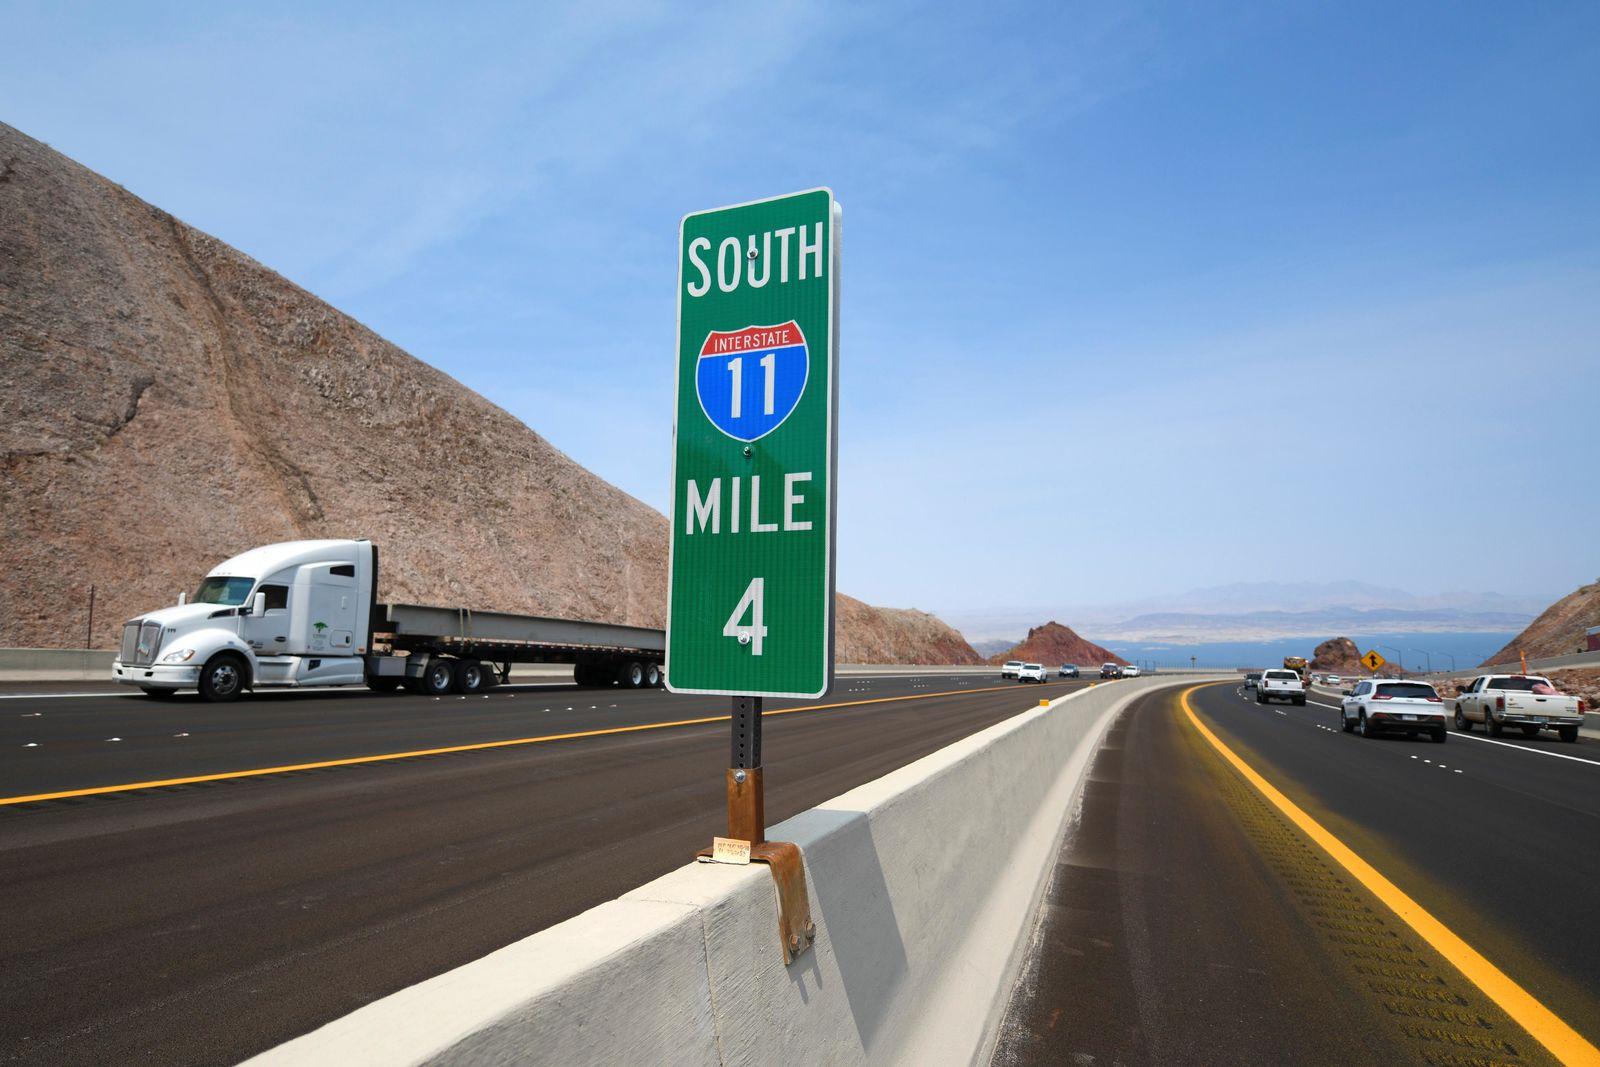 Traffic travels on Interstate 11 after the grand opening of a new section of the highway Thursday, August 9, 2018, in Boulder City. The section, also referred to as the Boulder City Bypass, marks the official start of the I-11 project between Las Vegas and Phoenix. CREDIT: Sam Morris/Las Vegas News Bureau